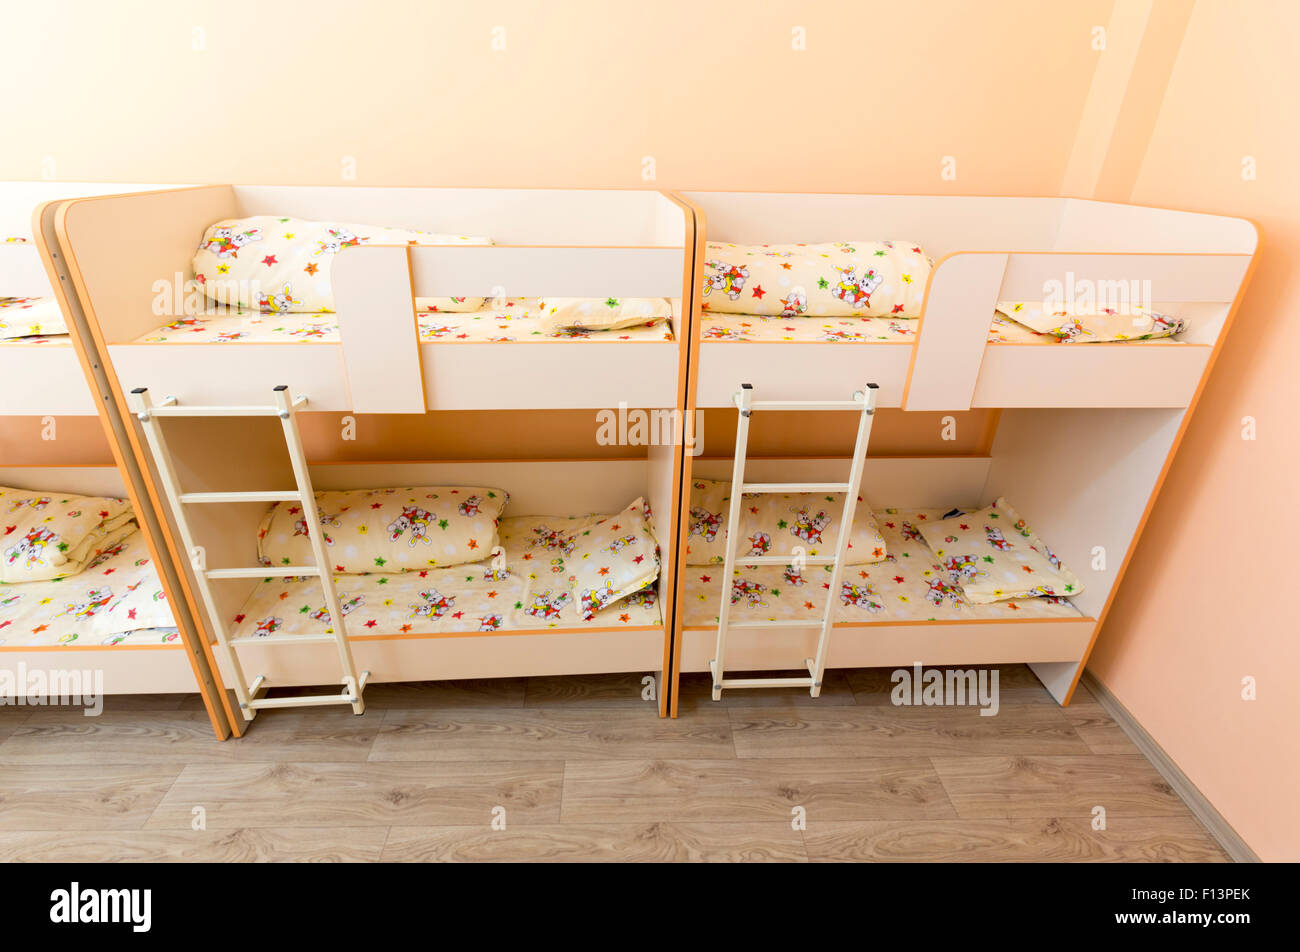 New Kindergarten Bedroom With Small Bunk Beds With Stairs For The